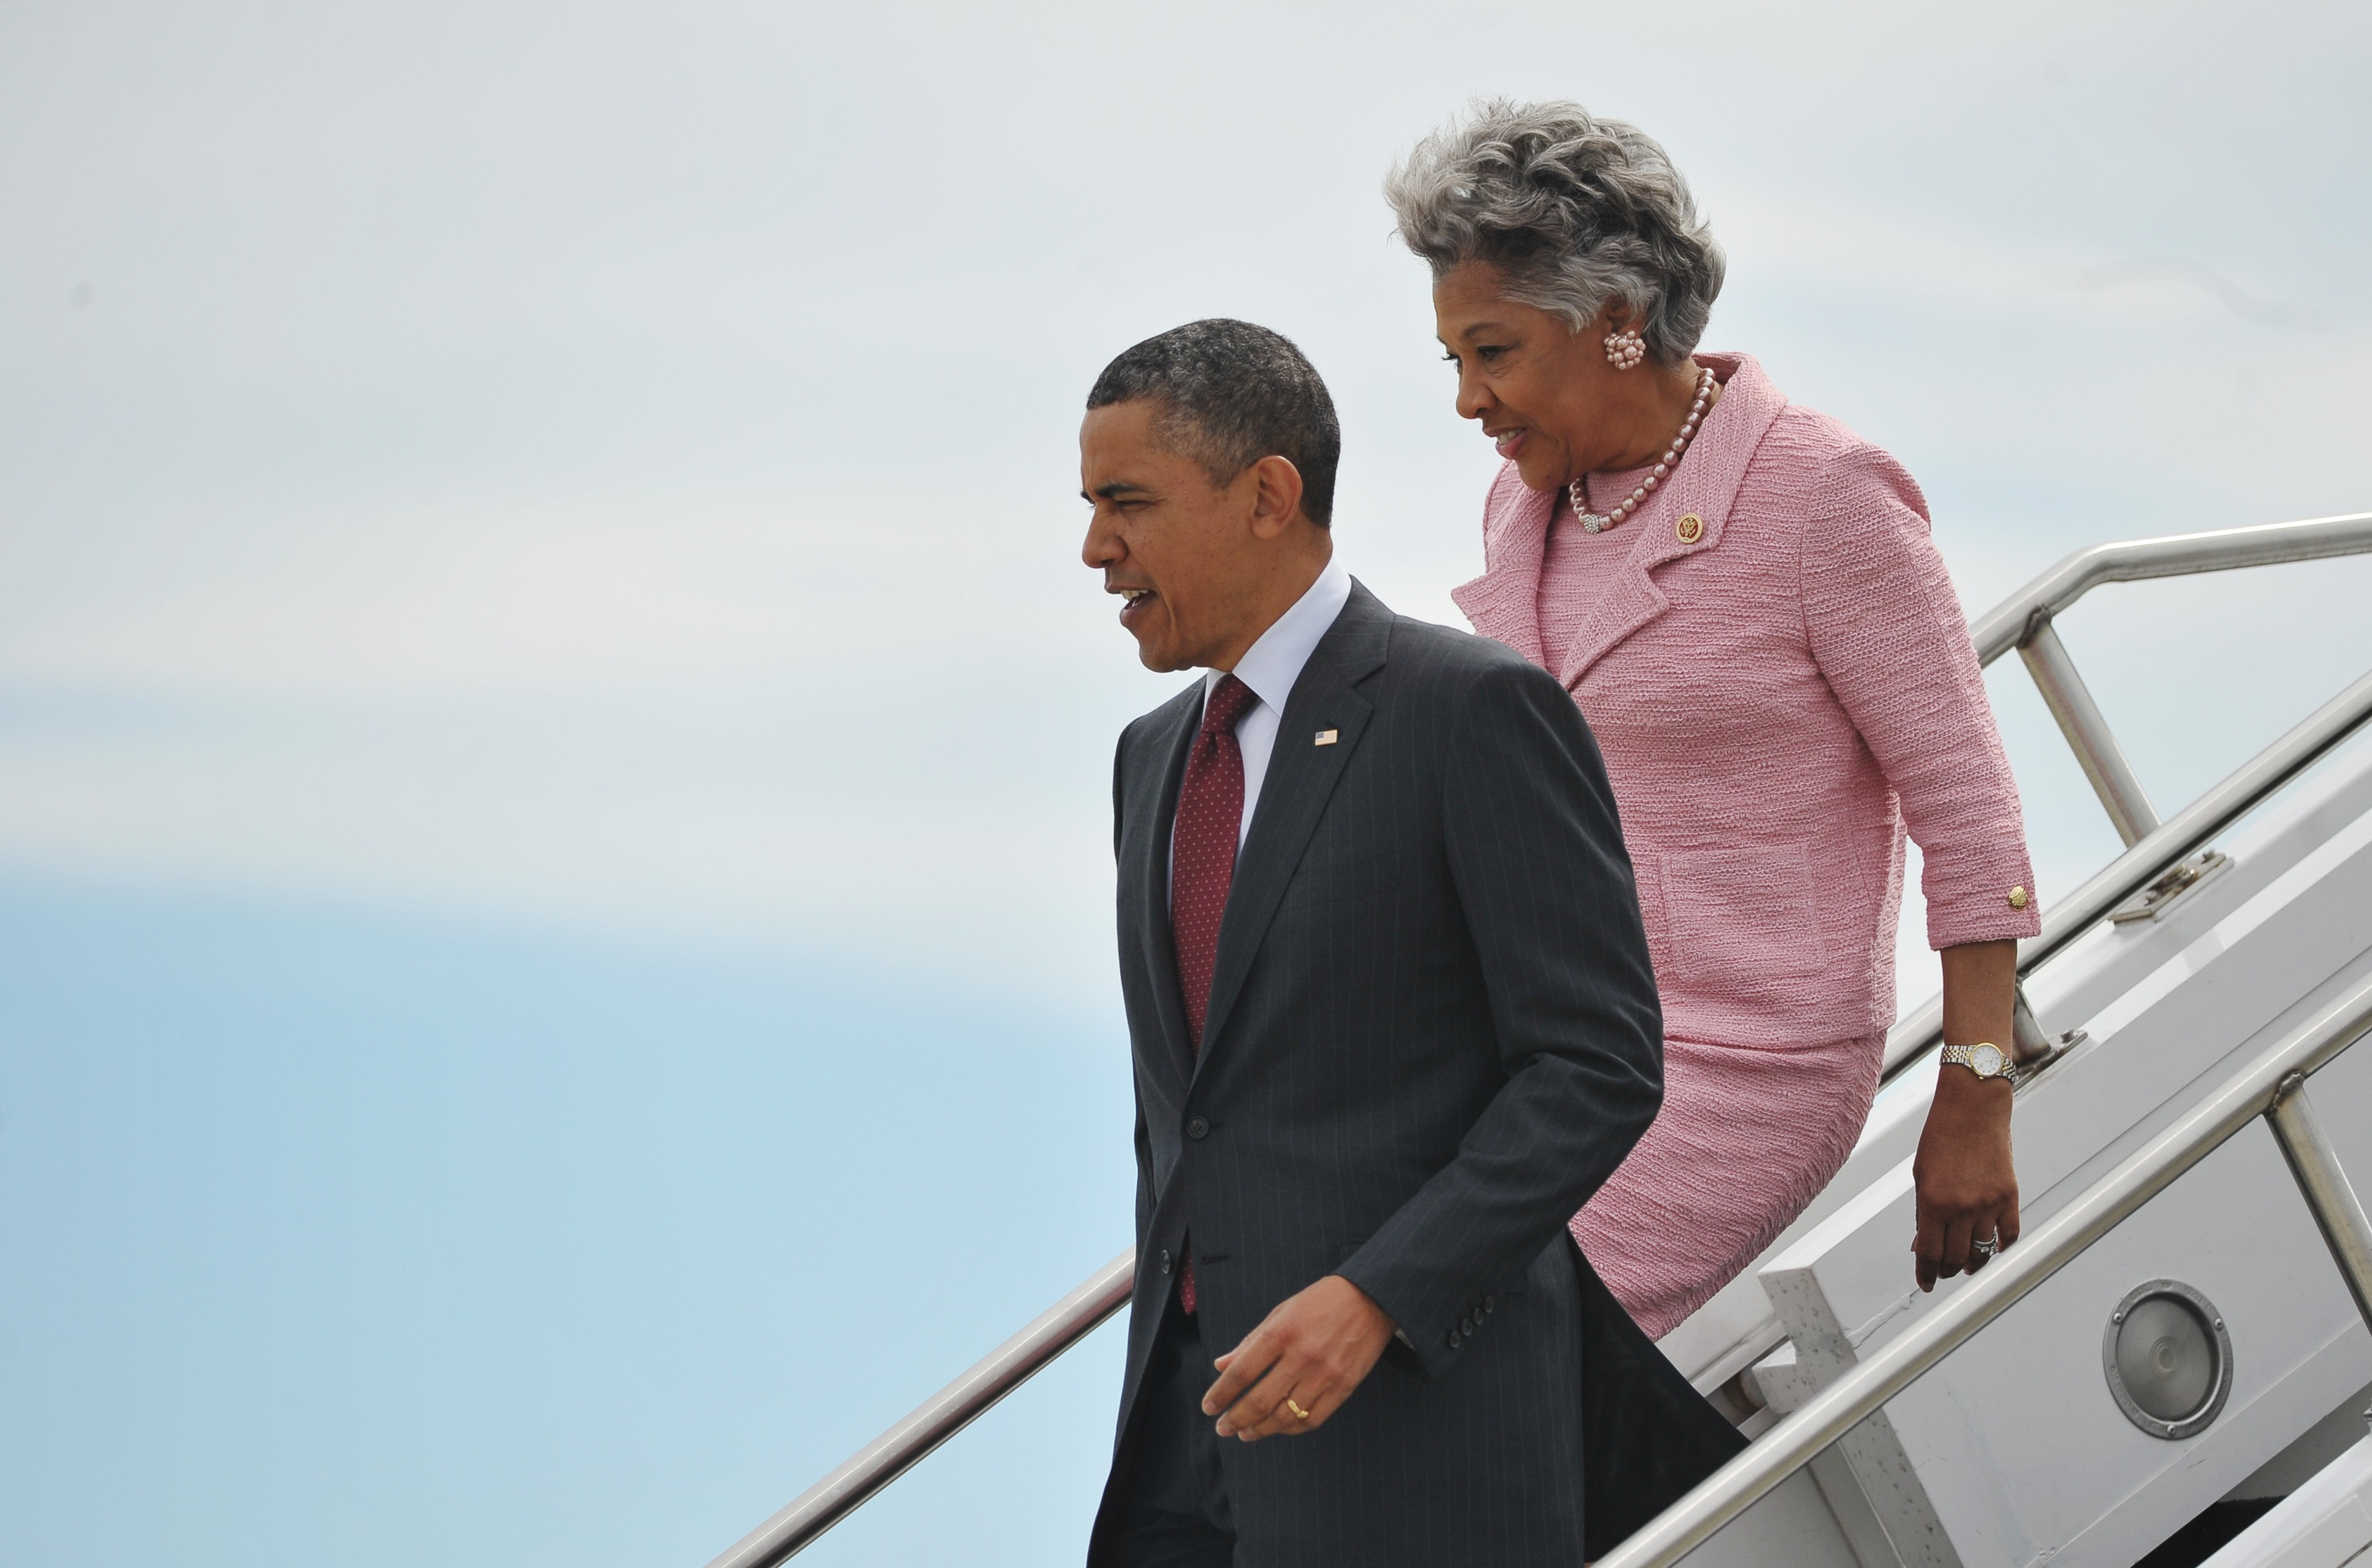 US President Barack Obama steps off Air Force One with Rep. Joyce Beatty on May 5, 2013 upon arrival at Rickenbacker International Airport in Columbus, Ohio. Obama is in Columbus to deliver the commencement address at Ohio State University. (MANDEL NGAN/AFP/Getty Images)